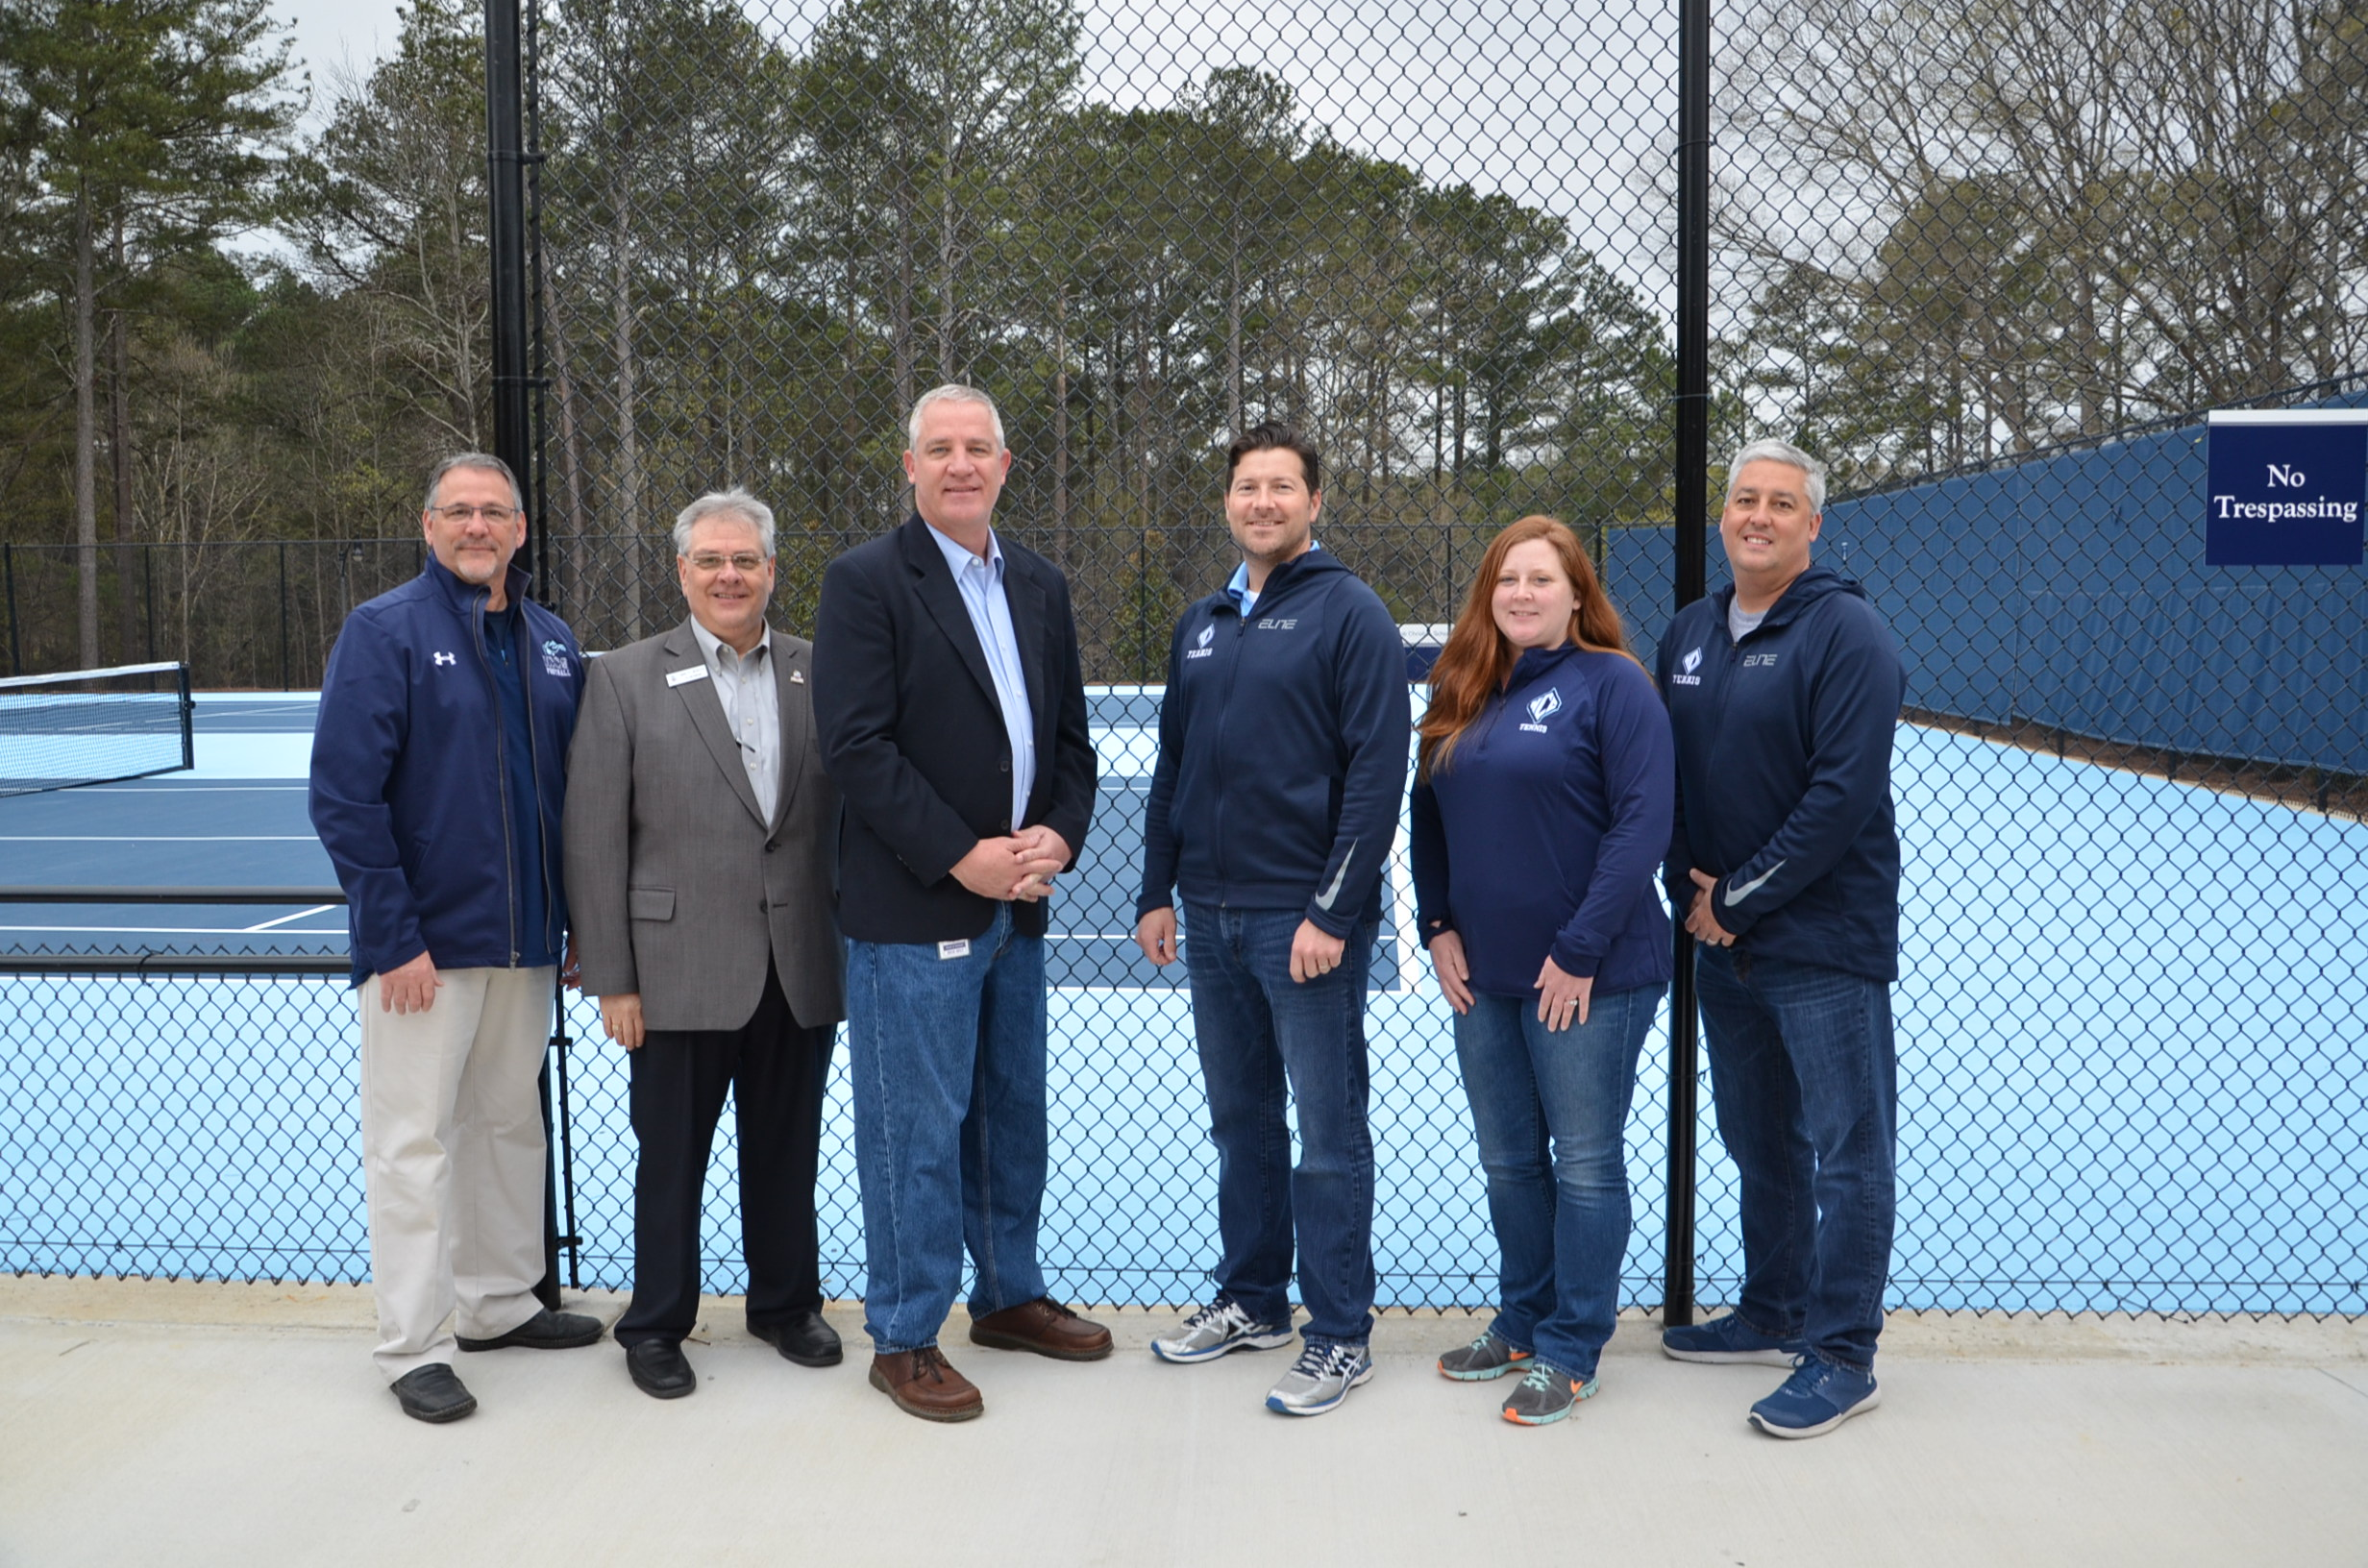 Image of Ribbon Cutting at Tennis Court